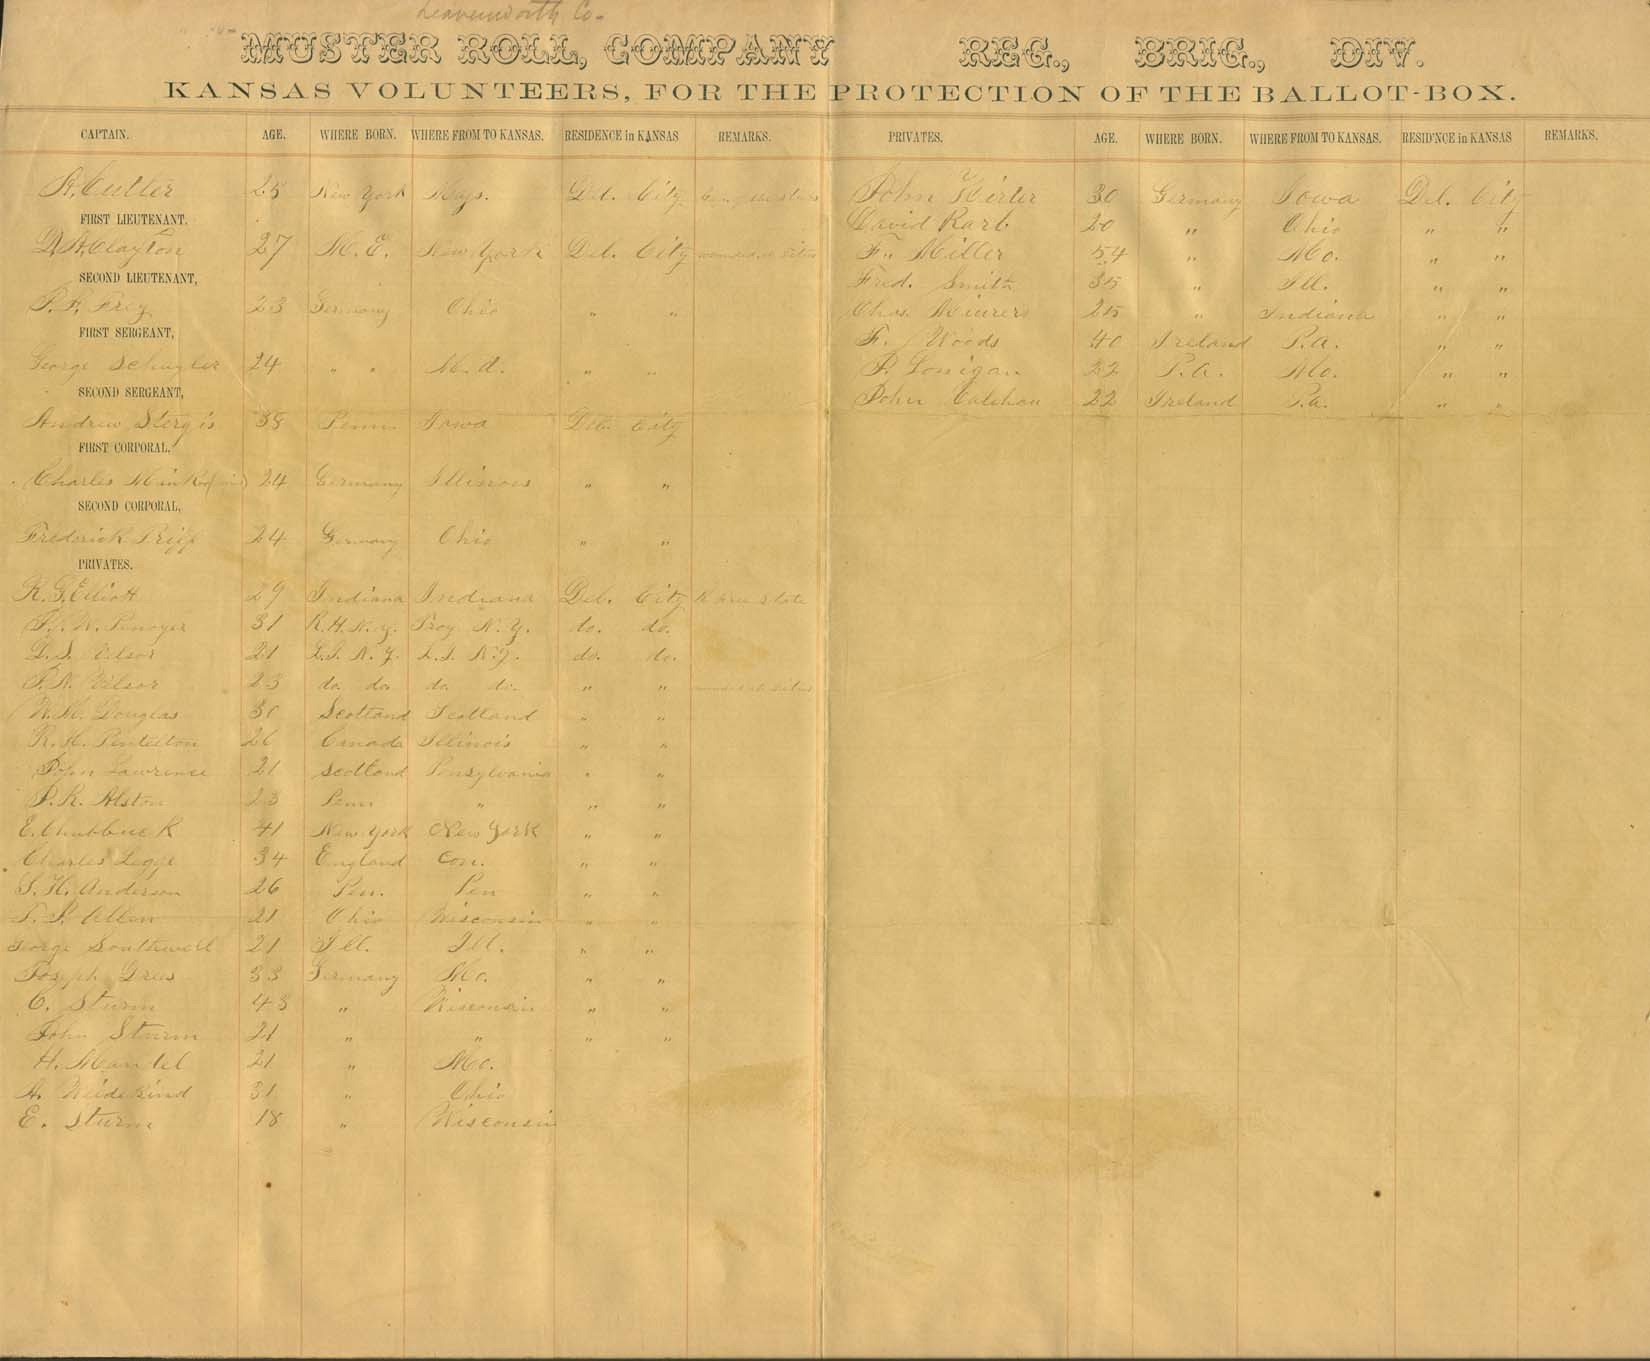 Muster Roll, Kansas Volunteers for the Protection of the Ballot Box, Leavenworth County